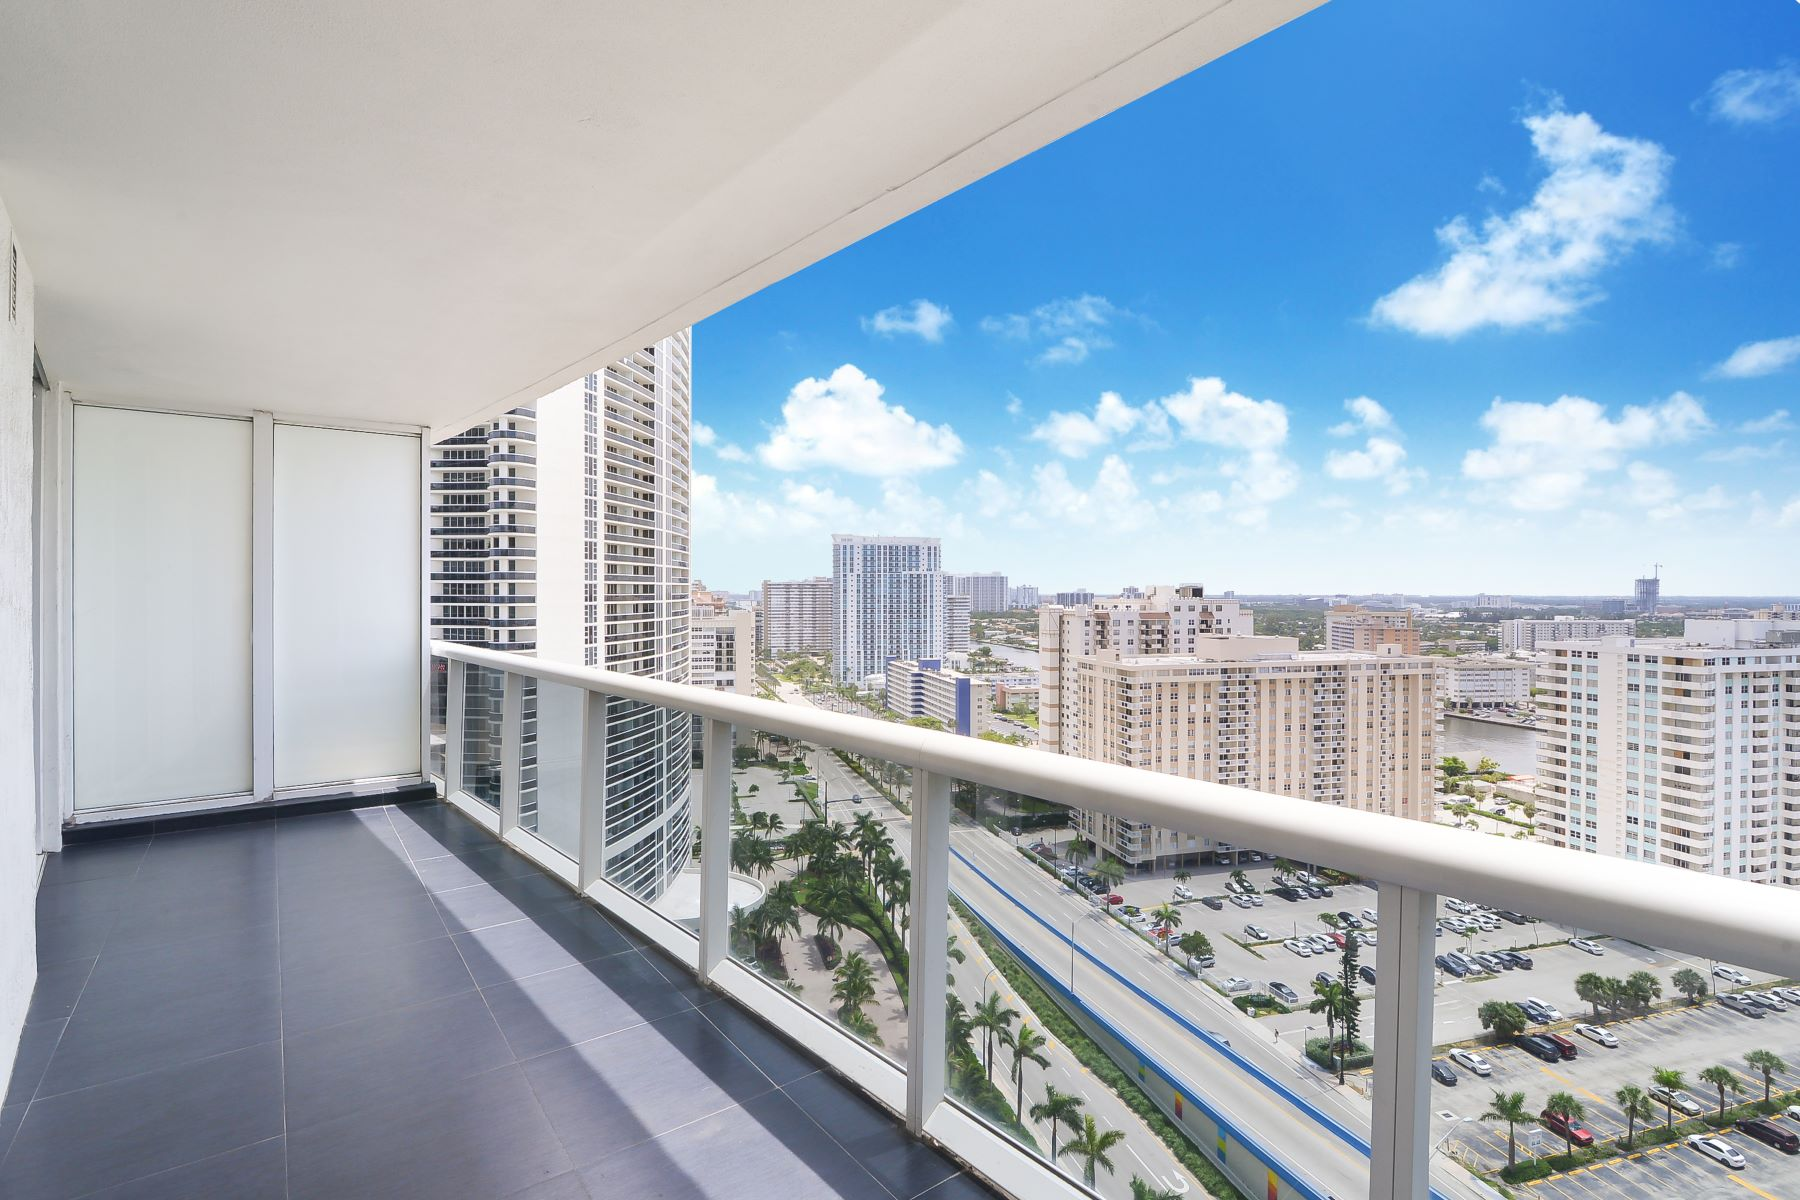 Condominiums for Sale at 1800 S South Ocean Dr 2107, Hallandale, Florida 33009 United States